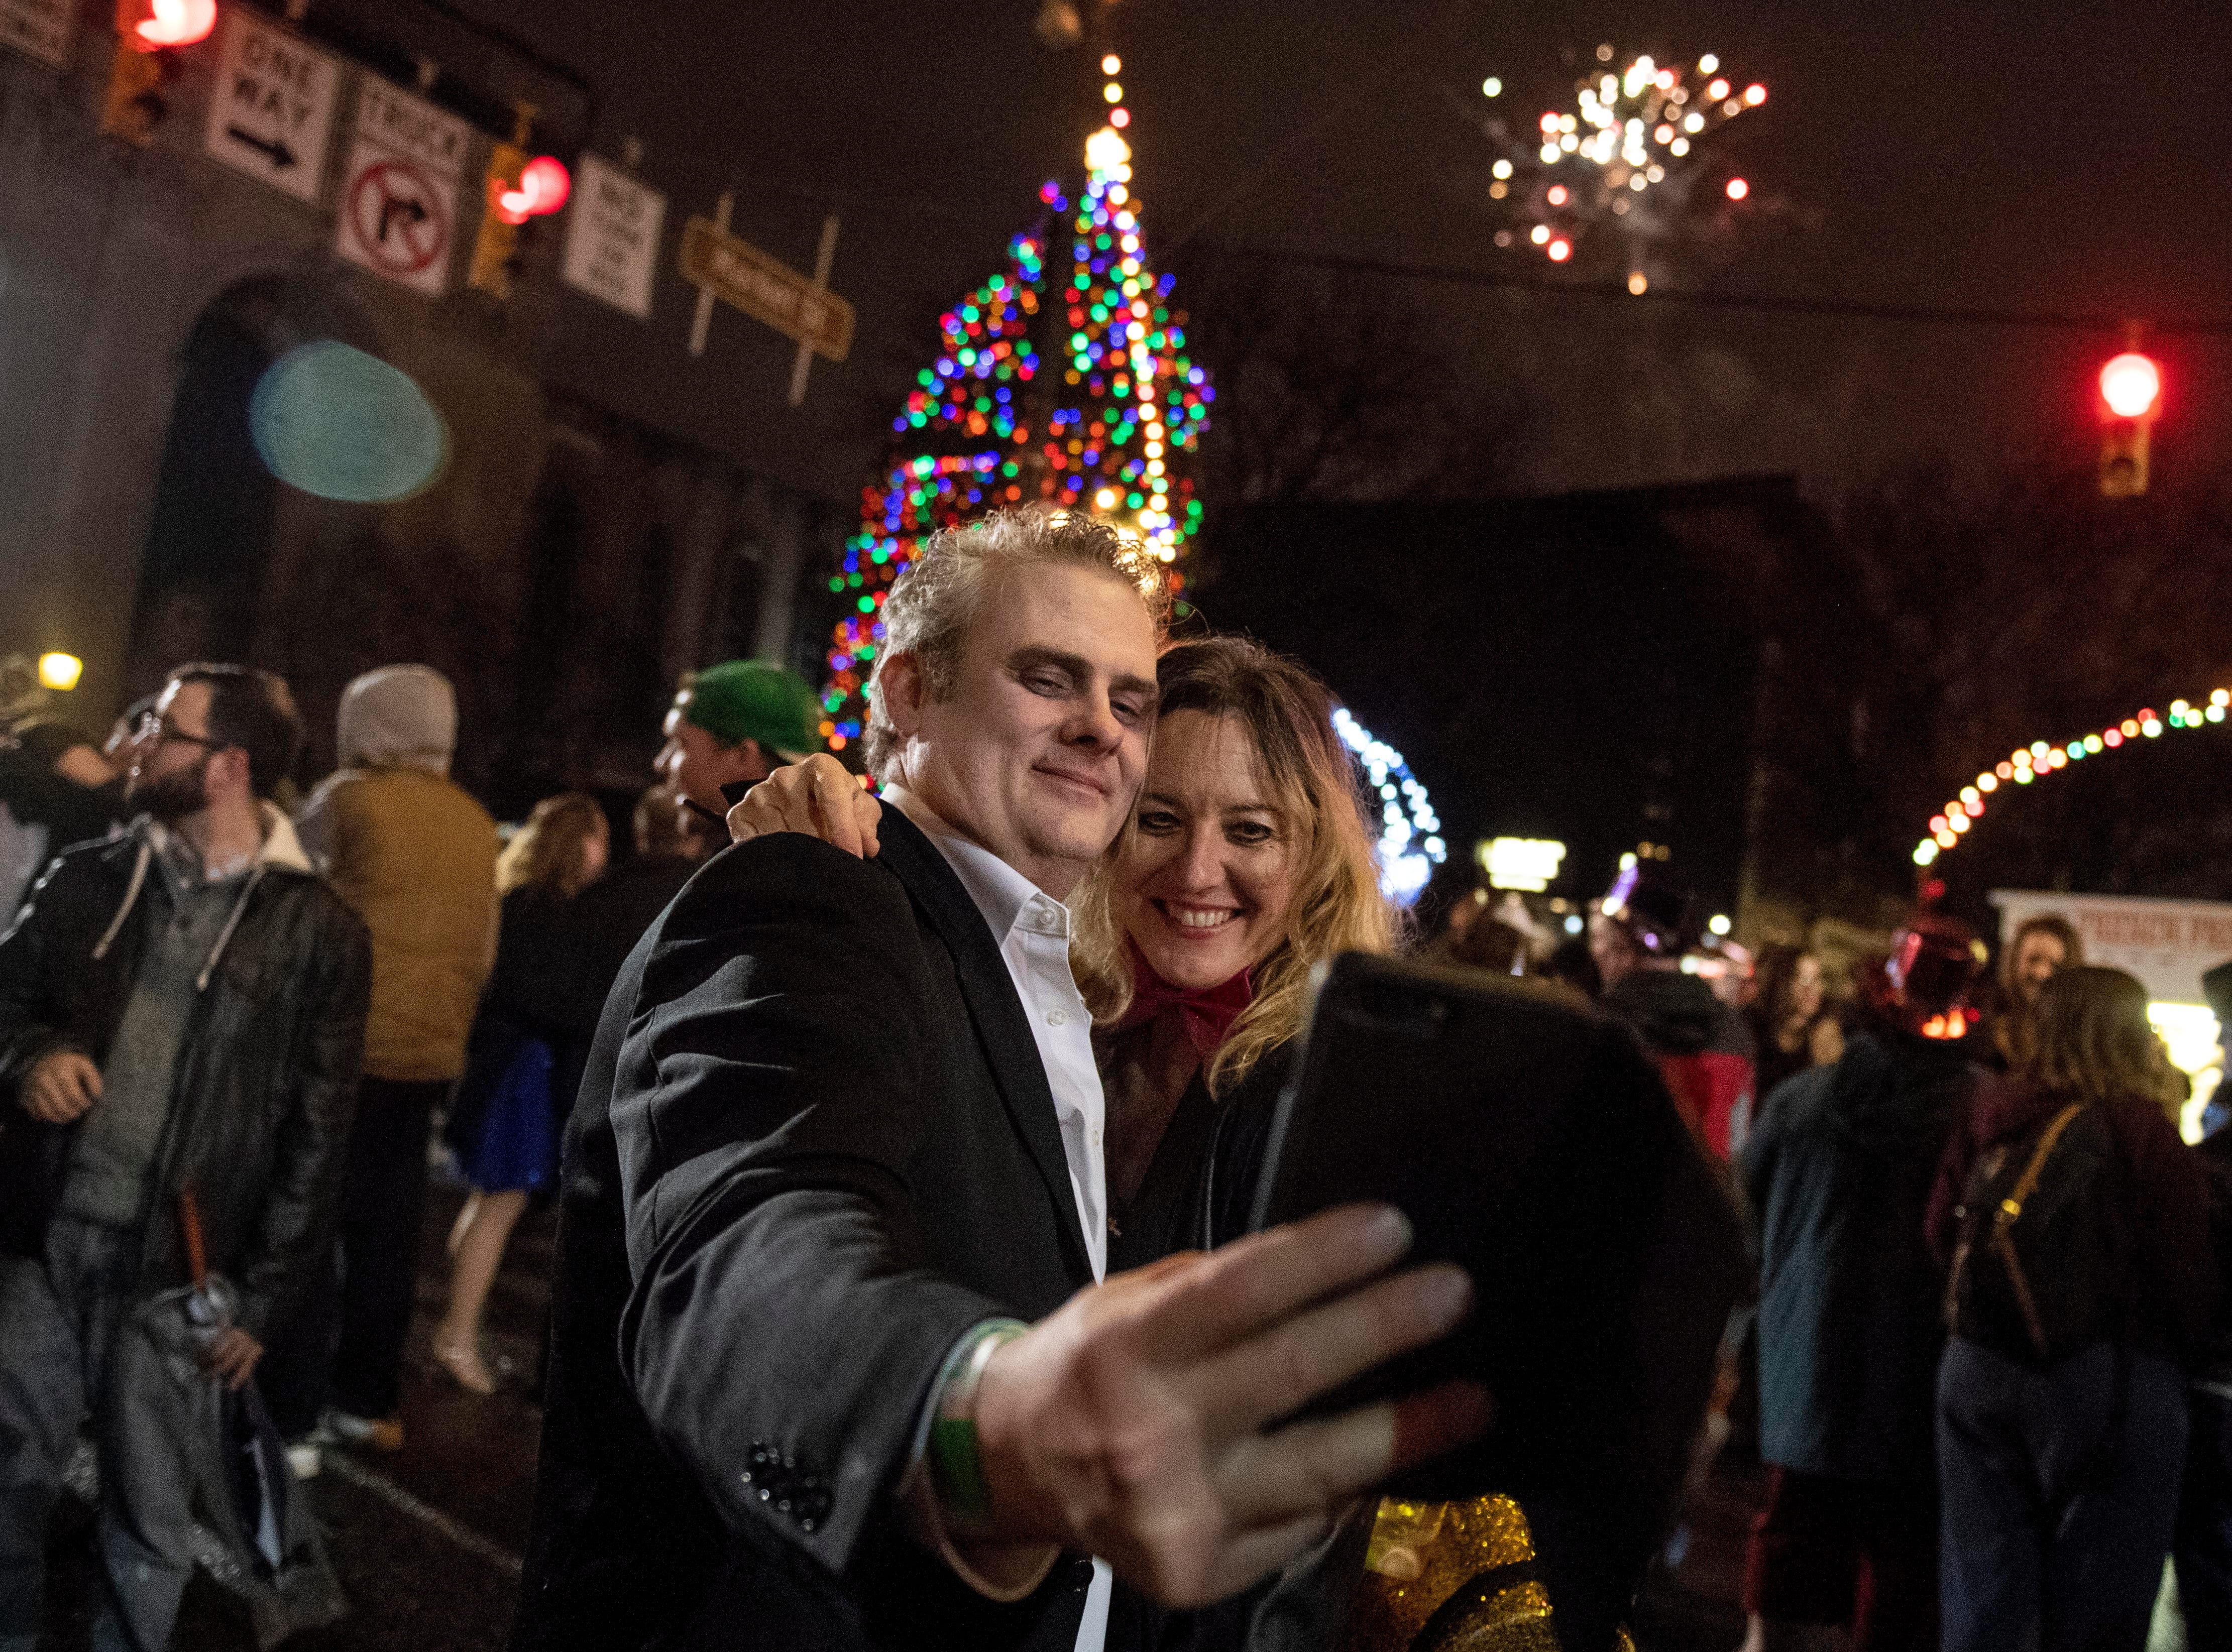 Dennis Hancock, left, and Angela Dumford take a photo as fireworks shoot into the sky behind them after midnight, Tuesday, Jan. 1, 2019, in Continental Square downtown. Hundreds gathered to watch the white rose drop, dance and ring in the New Year.